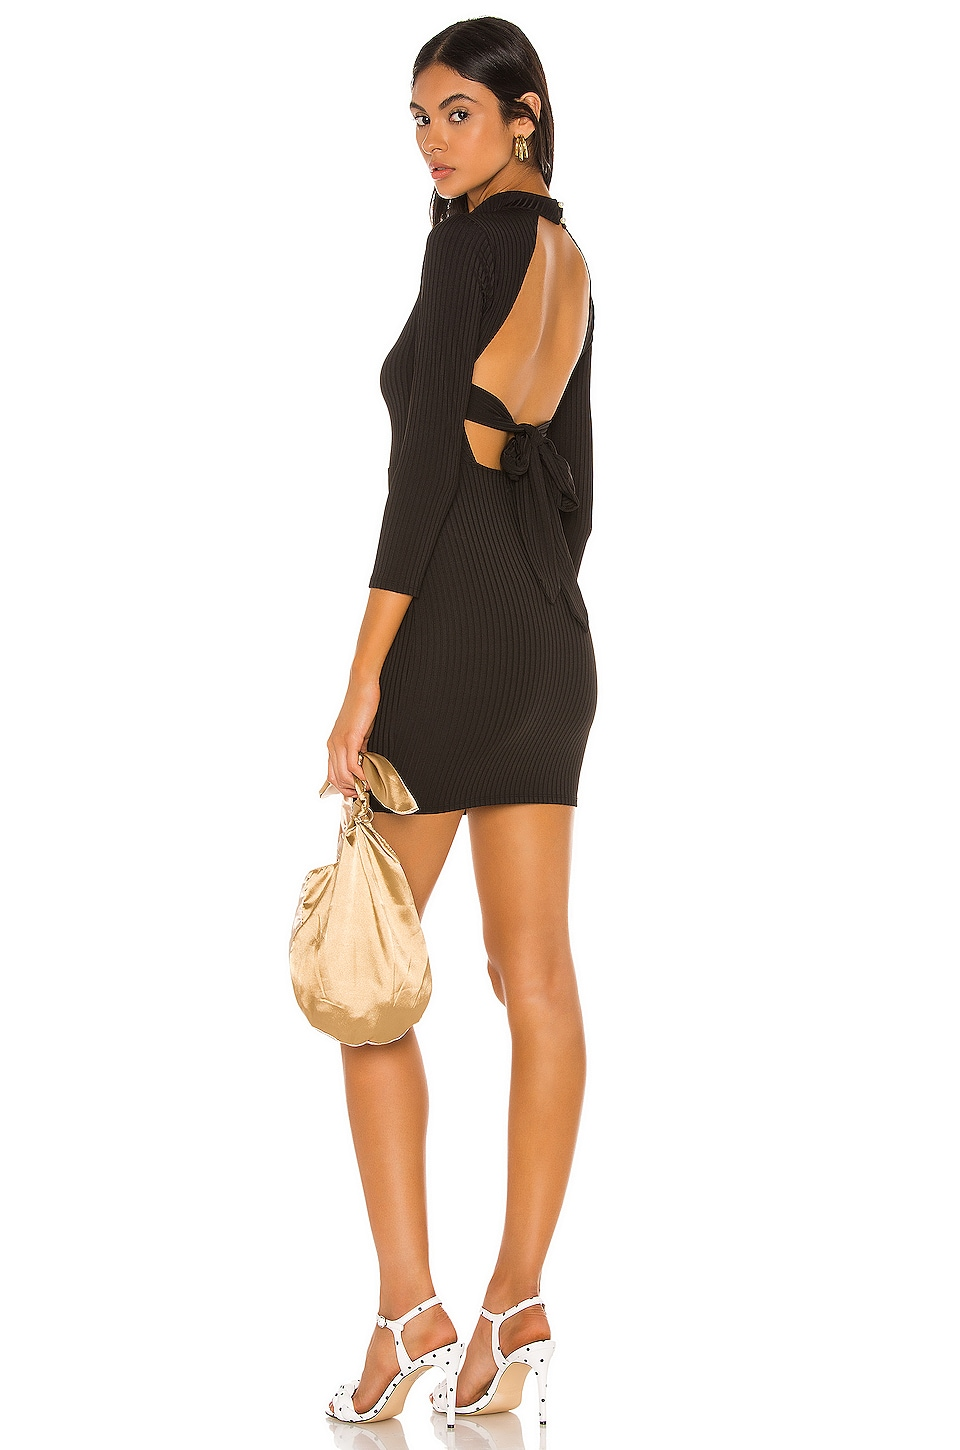 Camila Coelho Antonella Mini Dress in Black